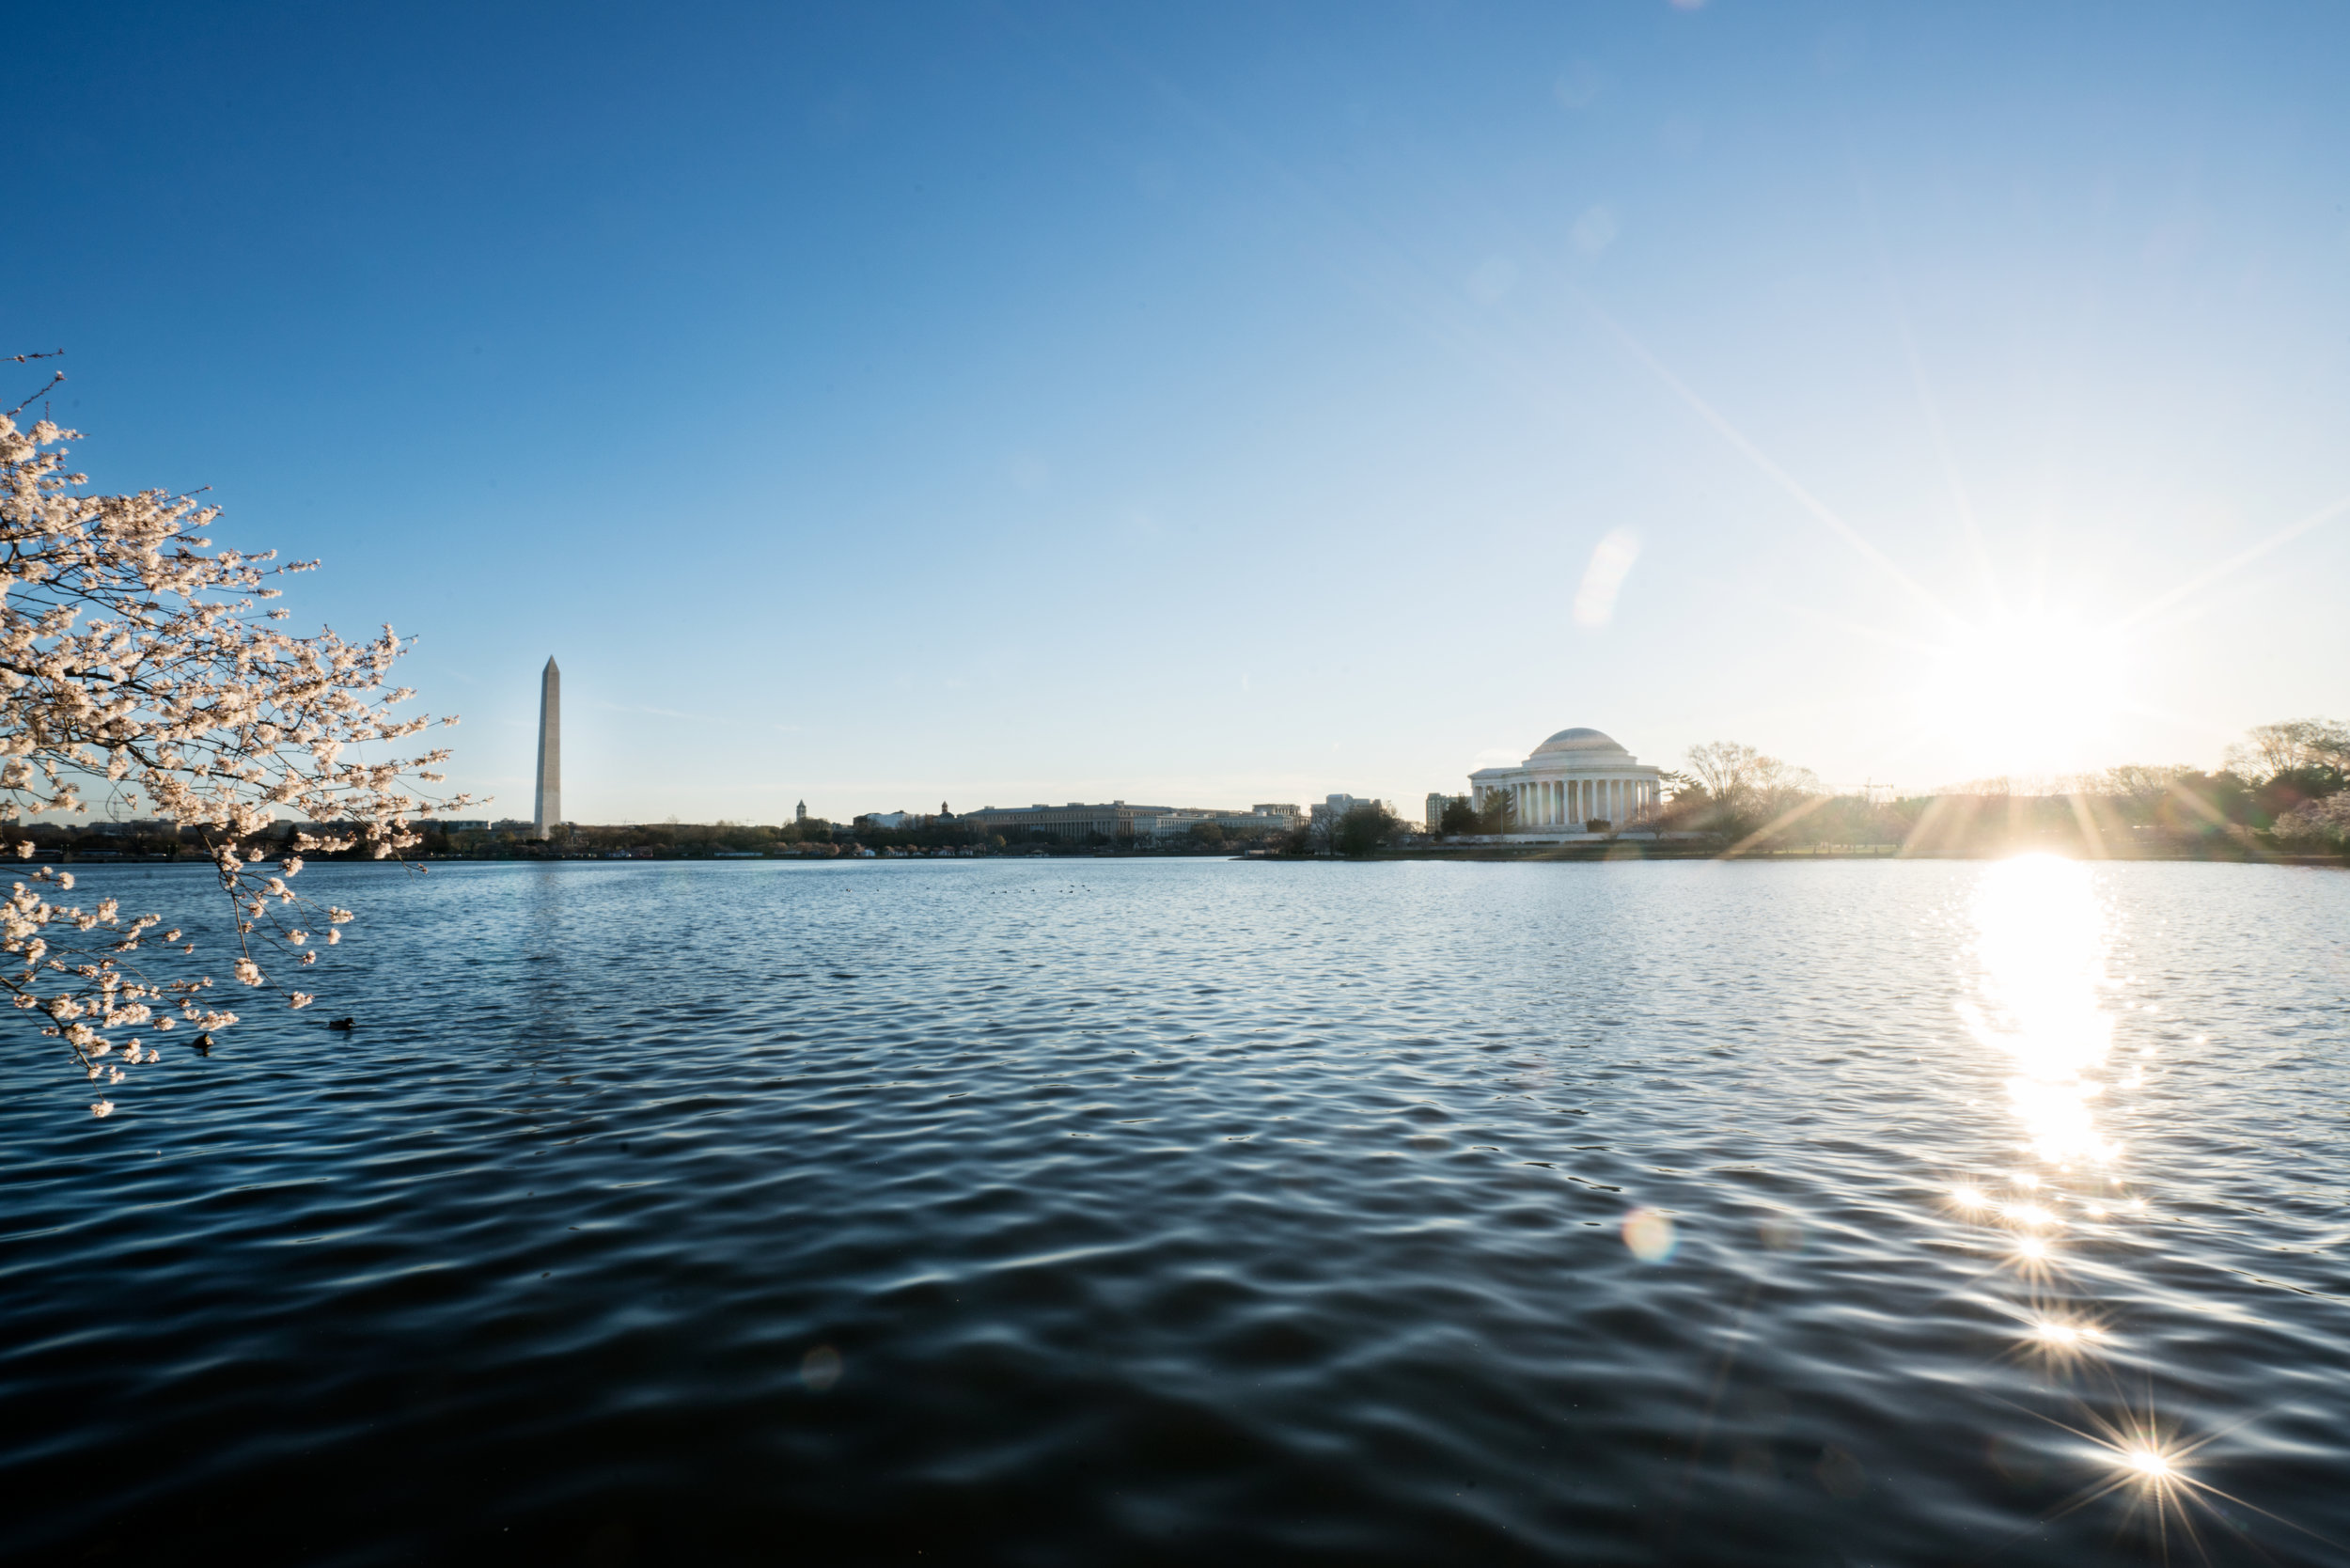 A great sun flare shot of the Washington Monument and the Jefferson Memorial with a little cherry blossom kicker over the Tidal Basin. #Sony A7RM2 , F/22, 1/40th, ISO 200